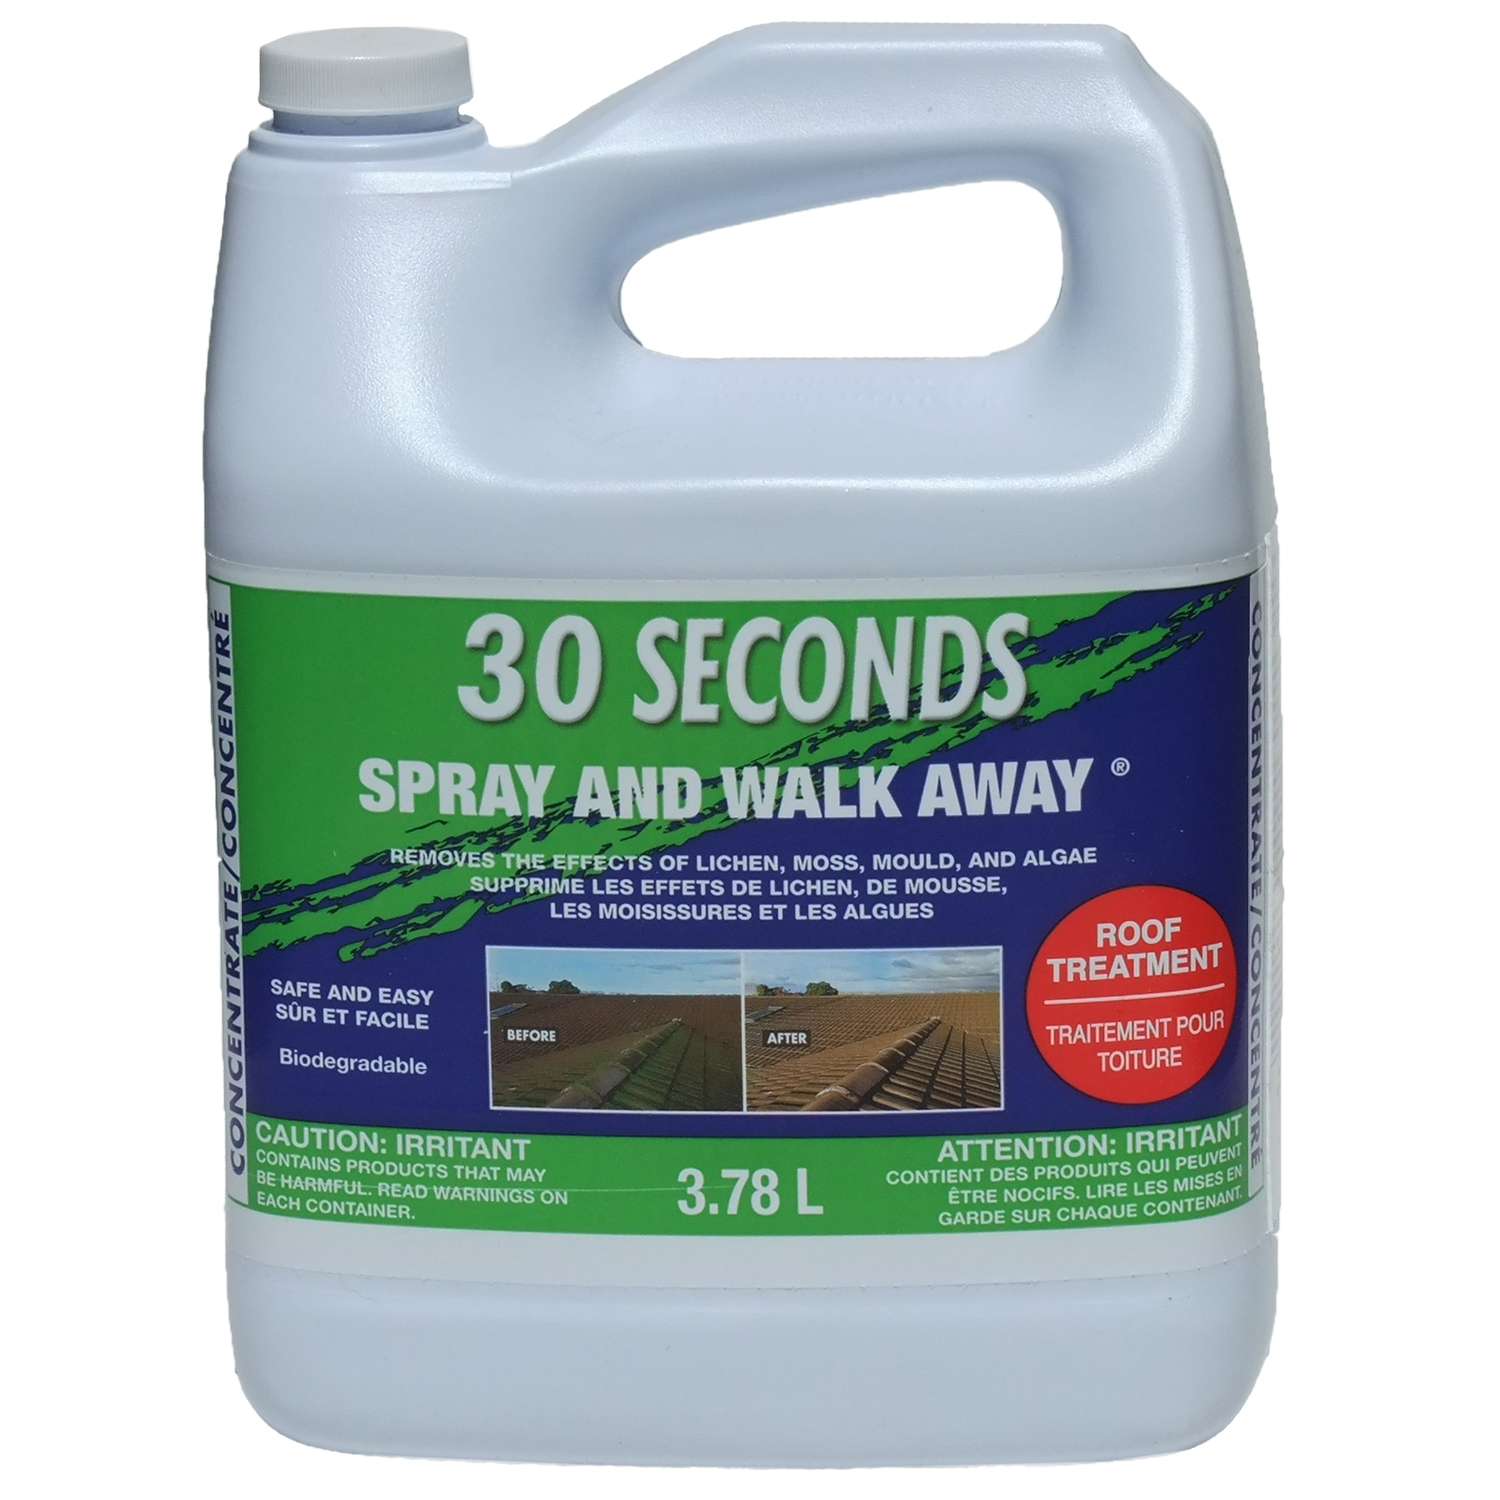 30-seconds-cleaner-spray-and-walk-away